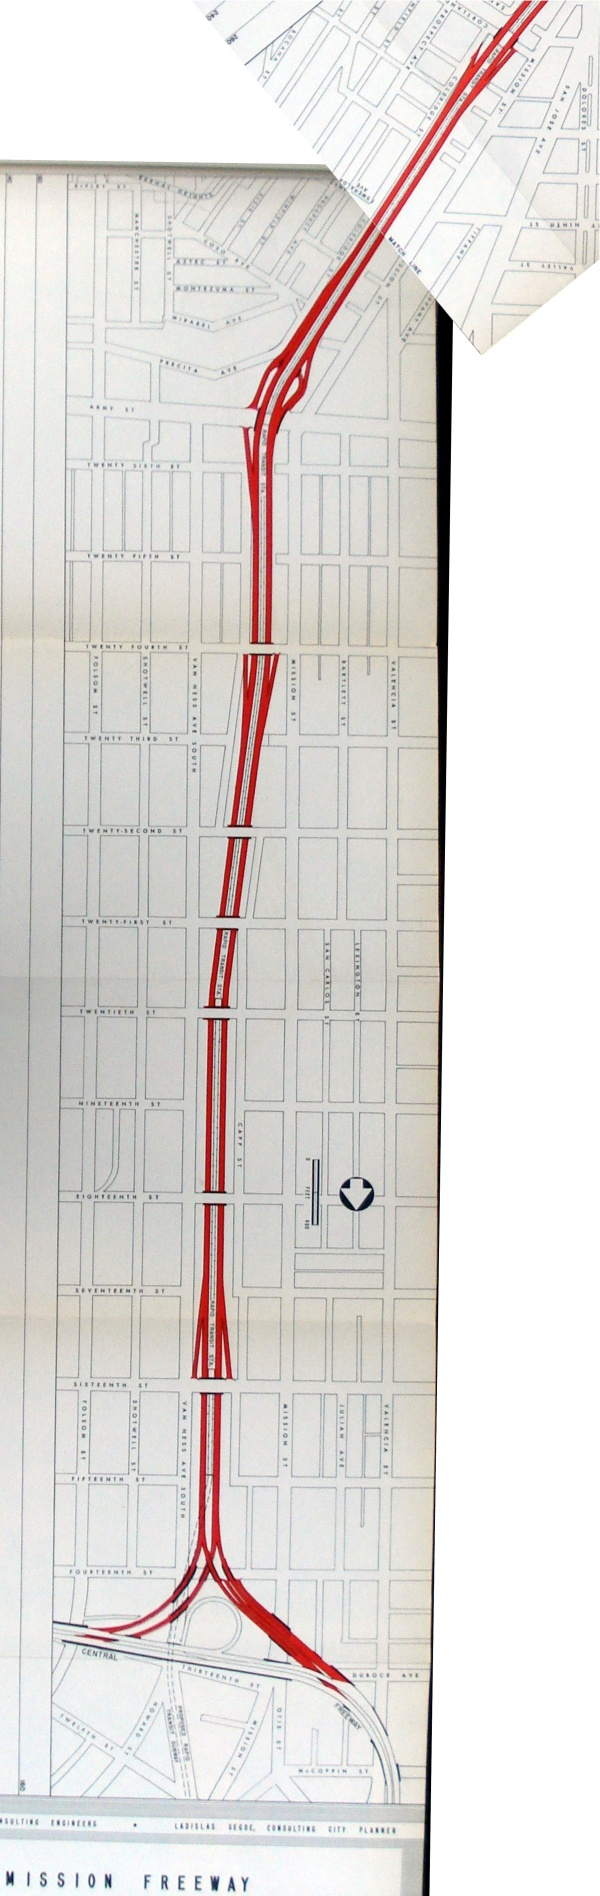 mission freeway plans, 30th to 14th